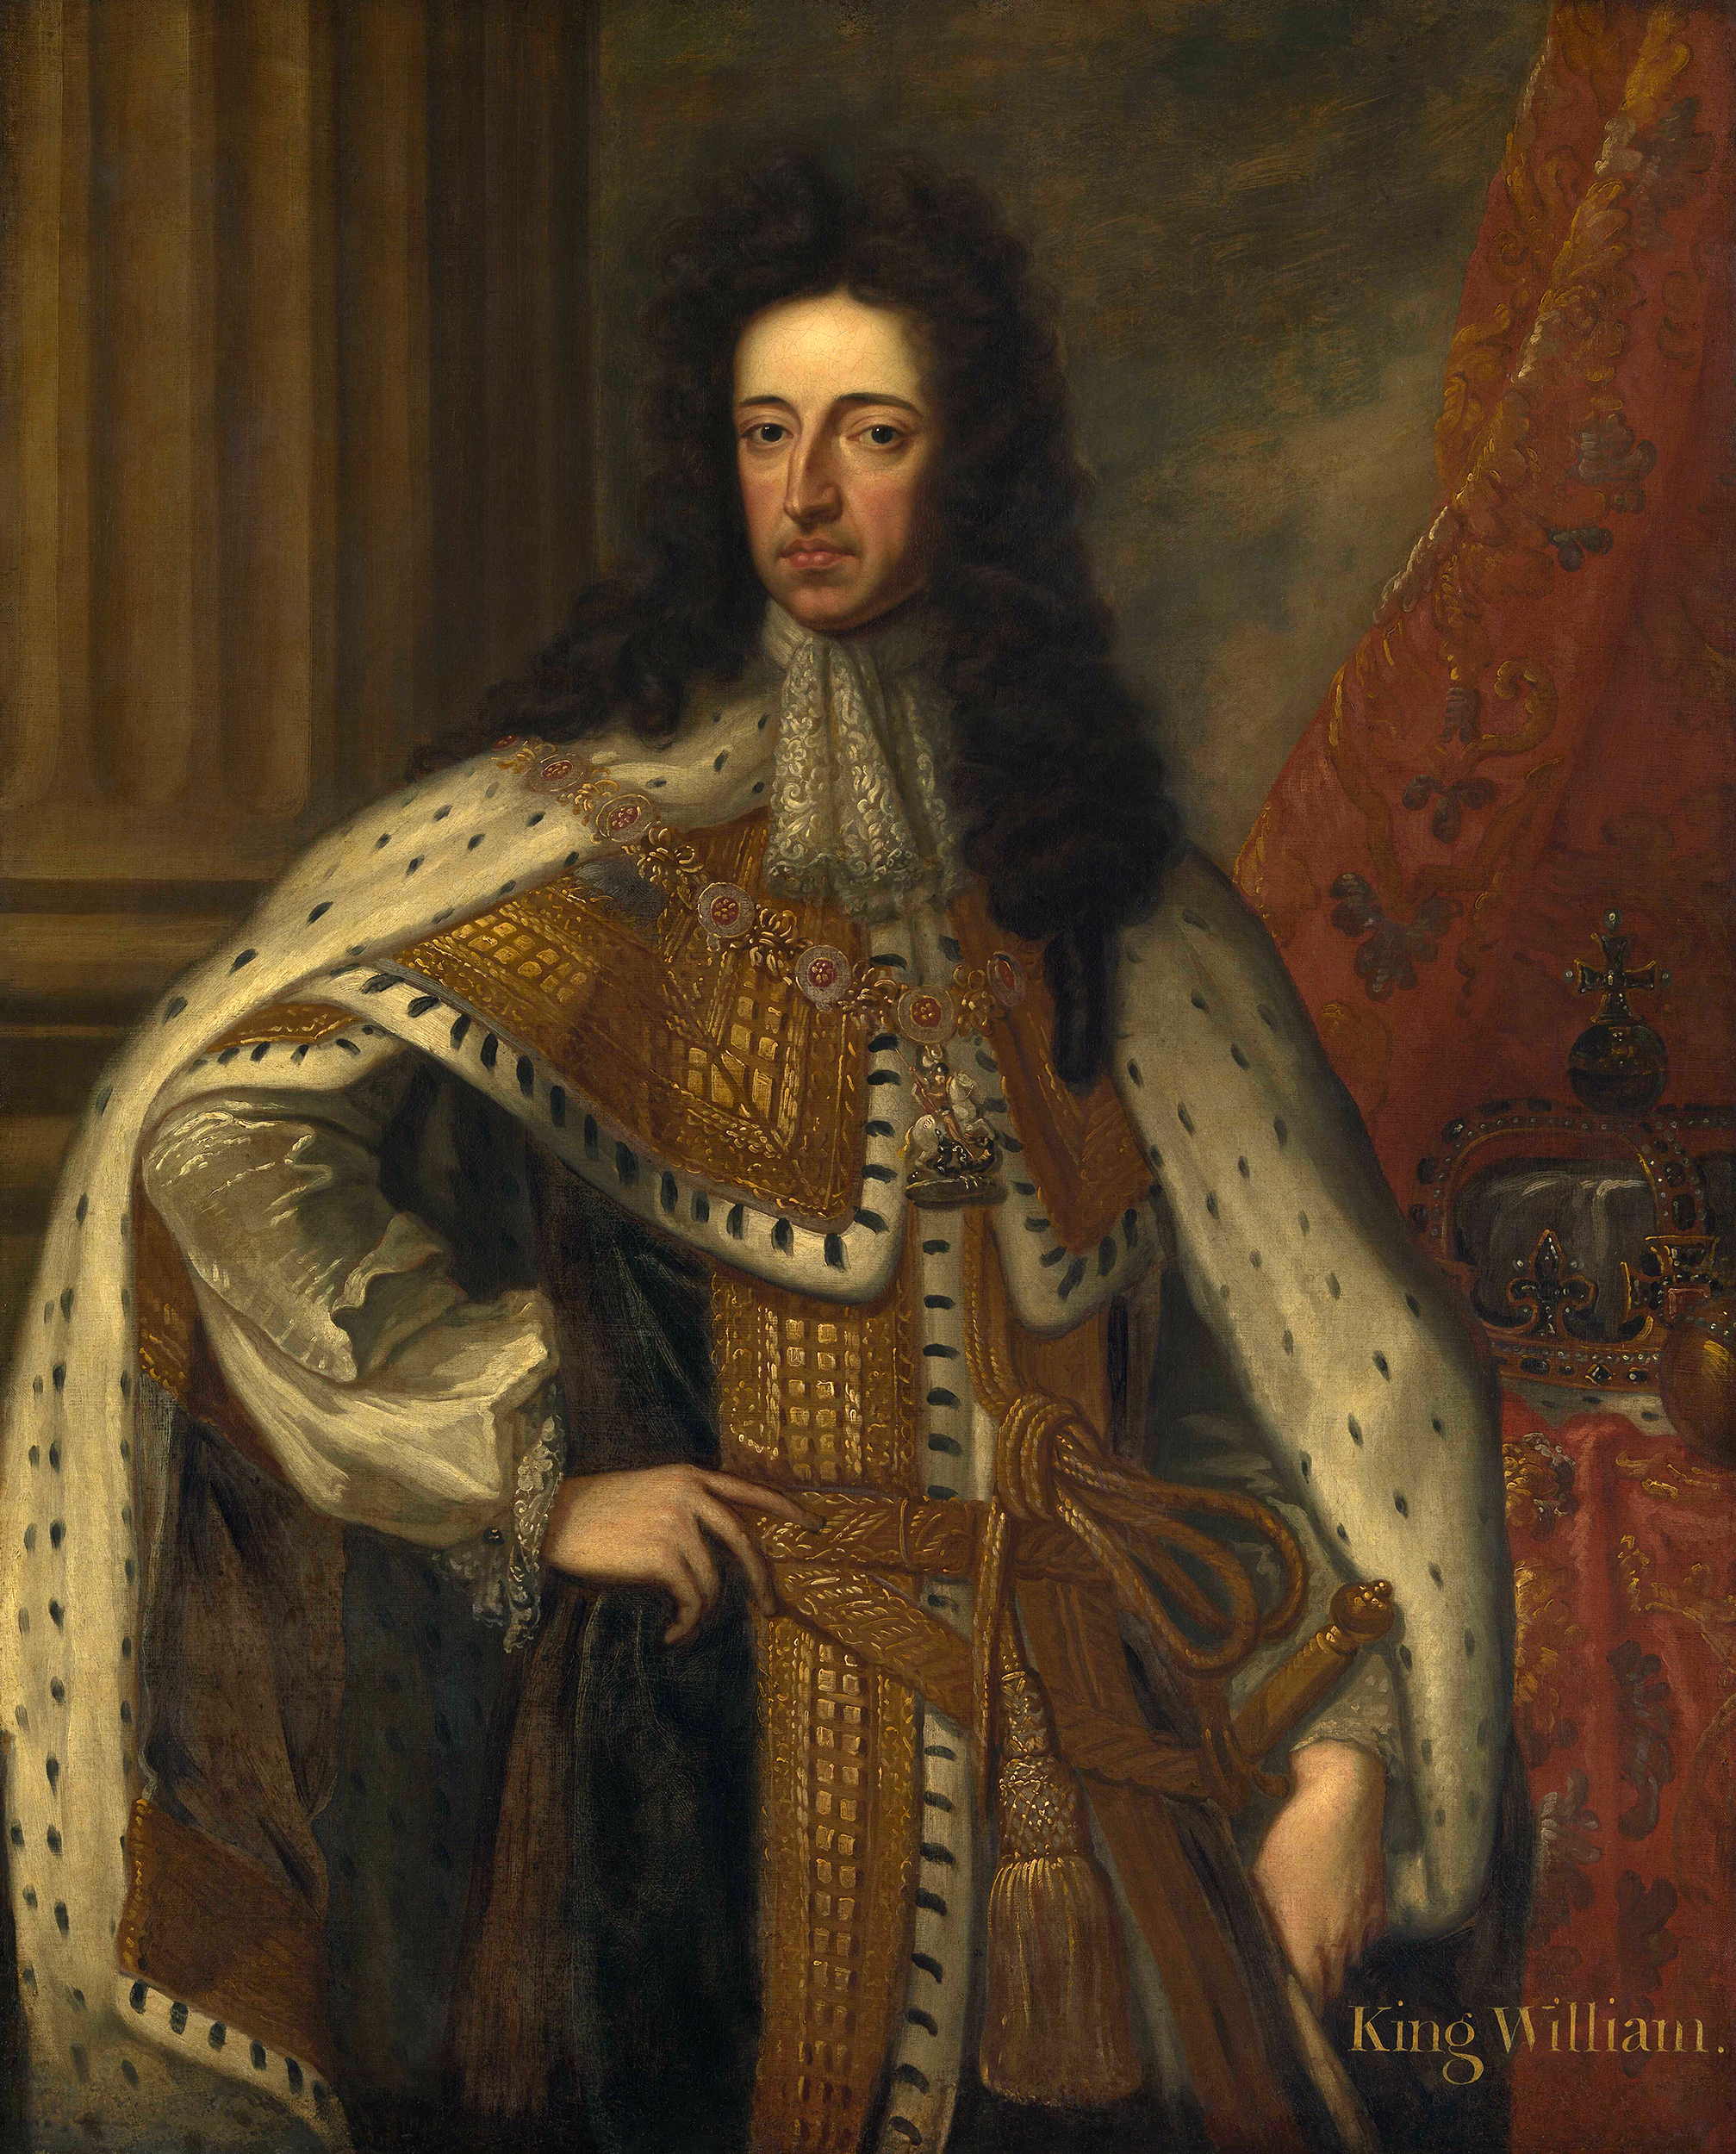 Portrait of William III (1650-1702), King of England, Scotland, and Ireland (1689-1702), Prince of Orange (1650-1702), Stadtholder of Holland,  Zeeland and Utrecht (1672-1702), Stadtholder of Guelders and Overijssel (1675-1702) | Portraits of Kings